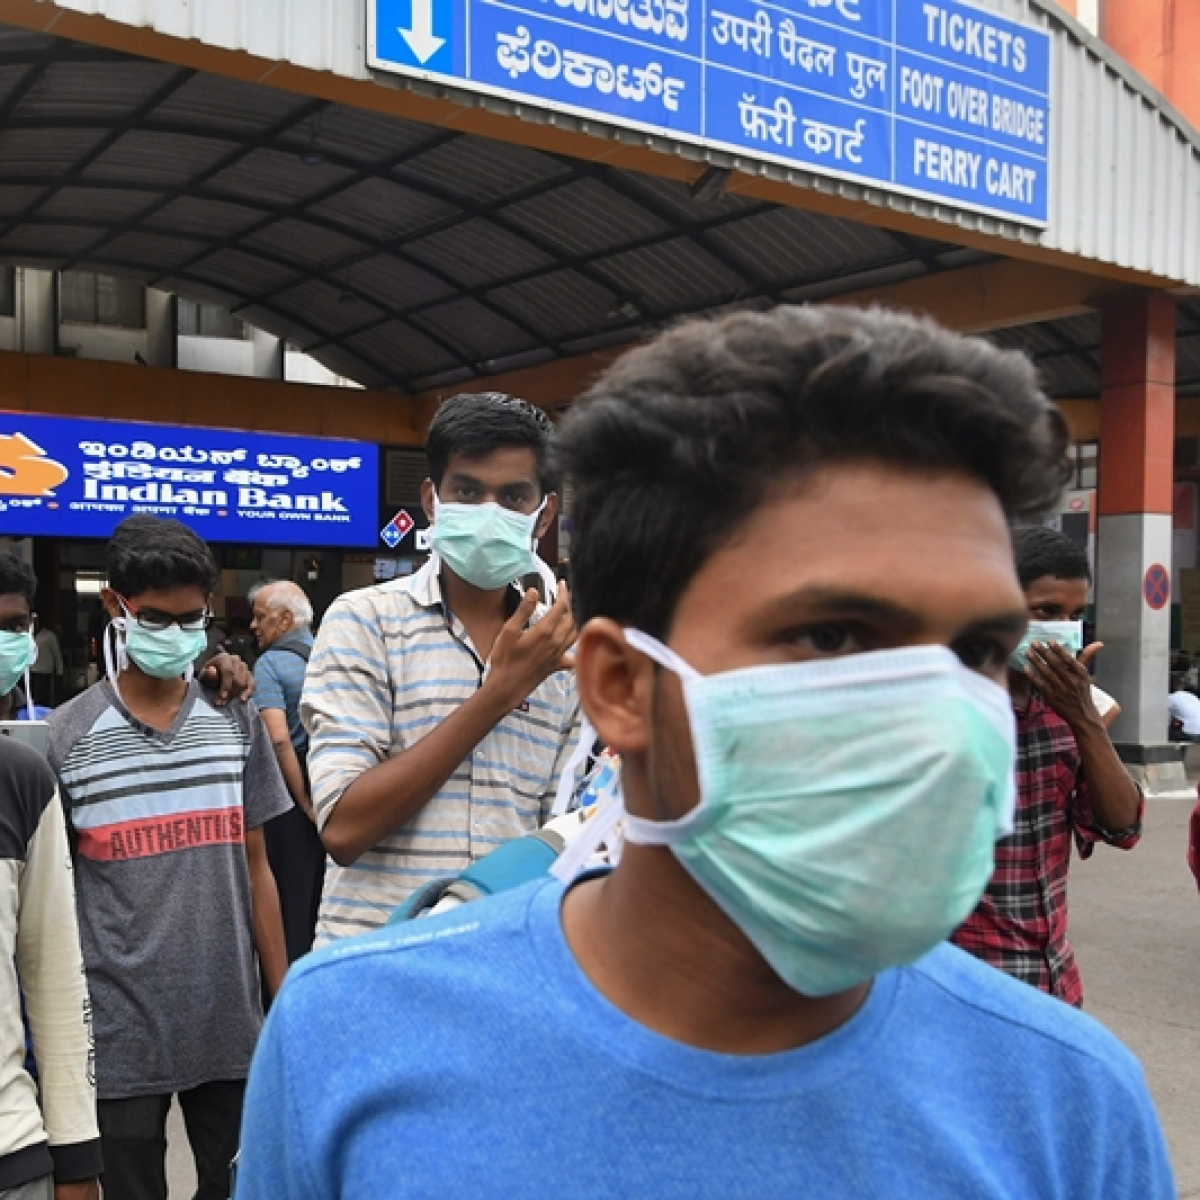 Latest coronavirus update in India: 3 tested positive for virus in Karnataka, taking number of infected people to 4